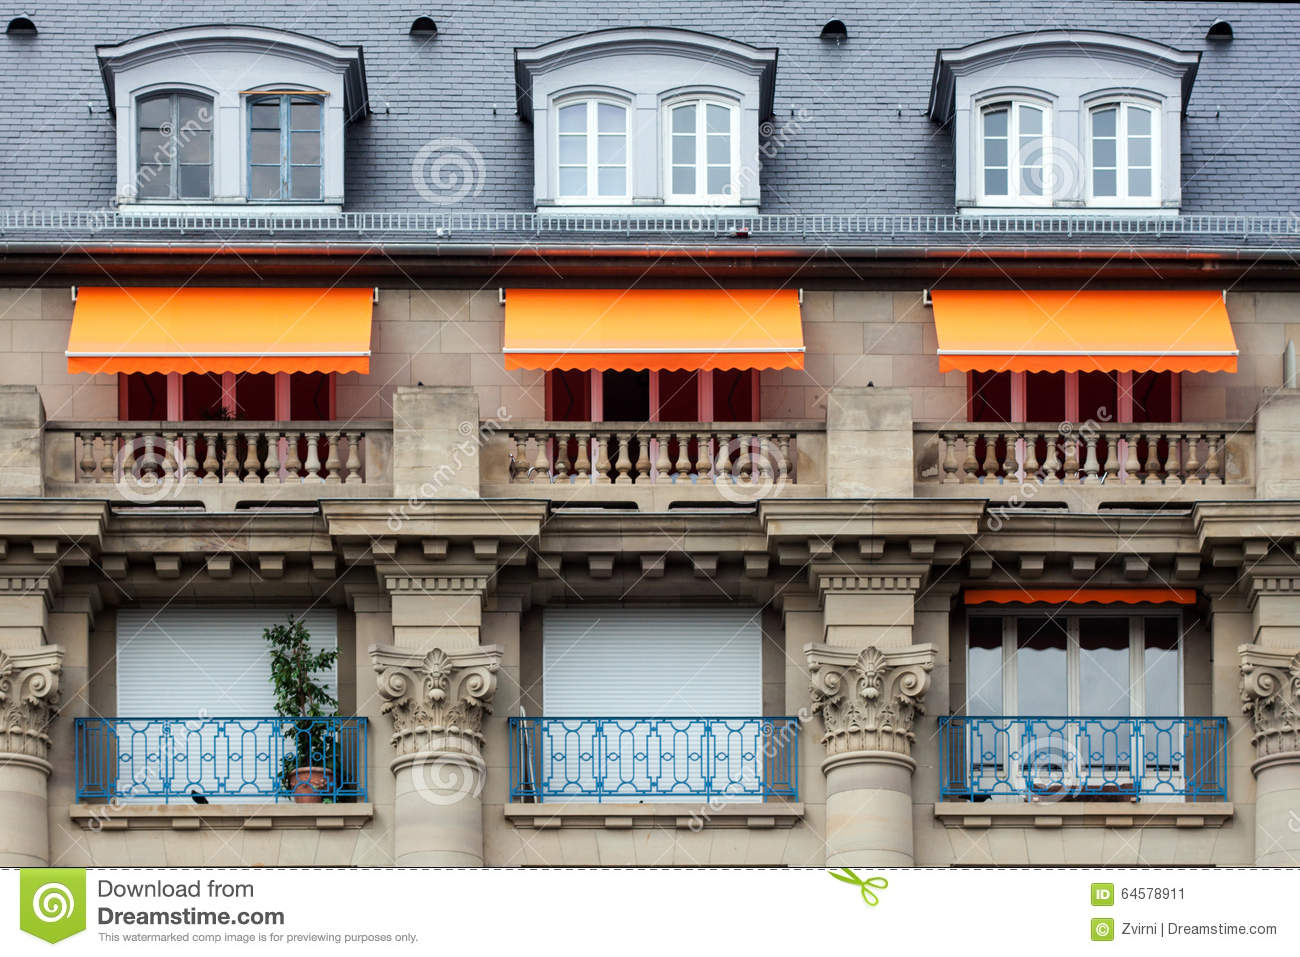 Awnings on the balconies